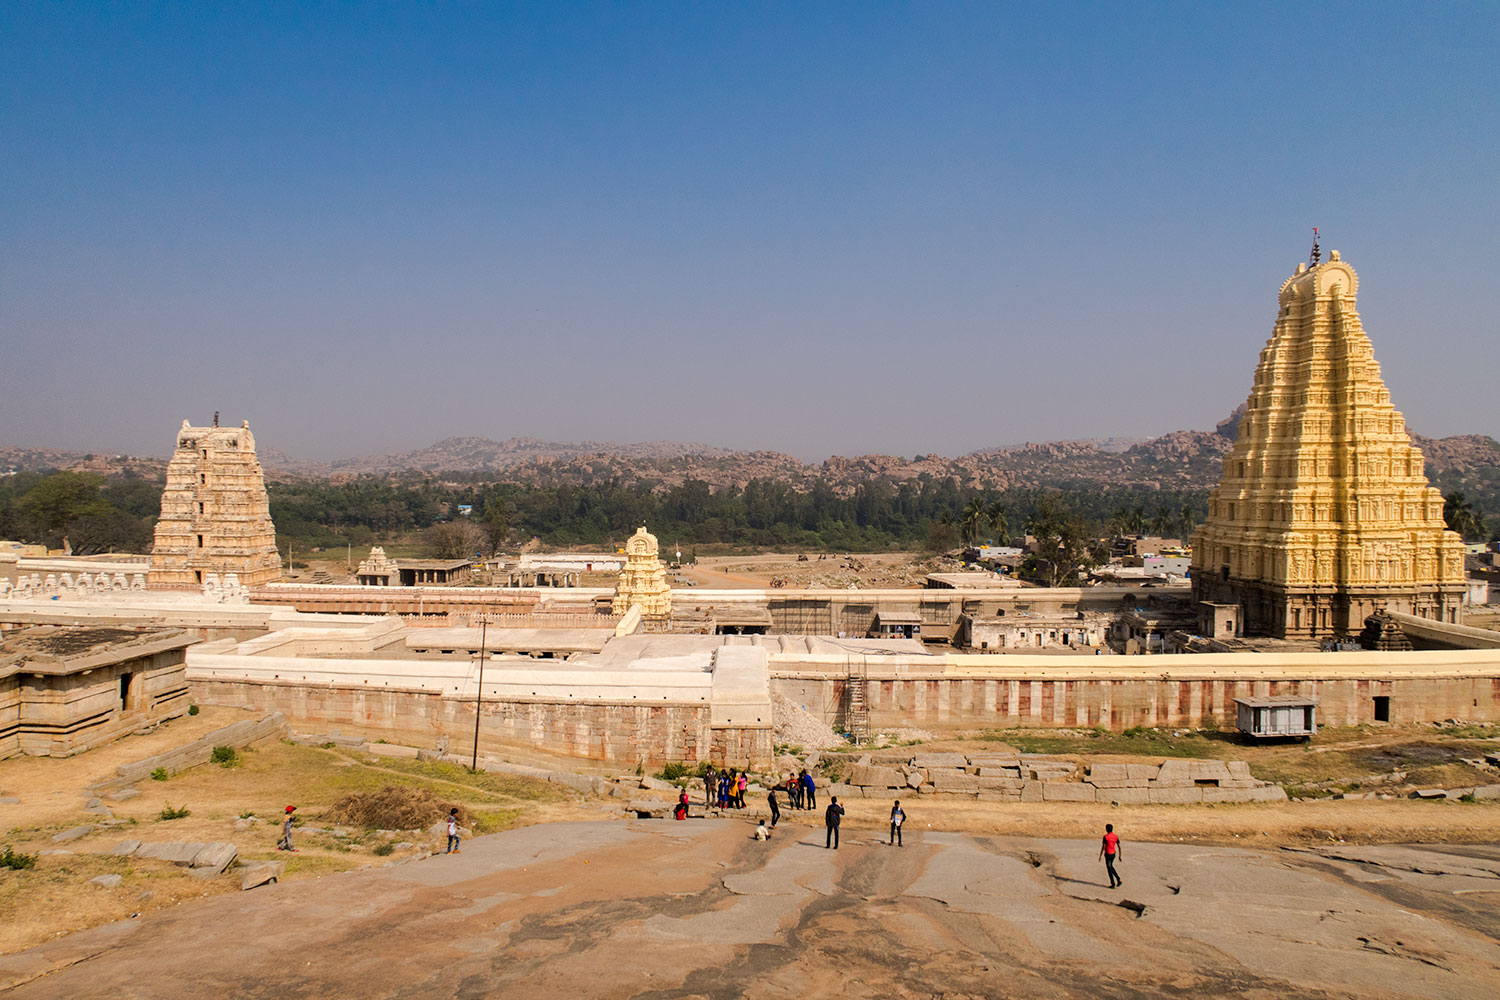 Hampi, the Rocky Mountain City - Things to do Places to Visit | Happymind Travels